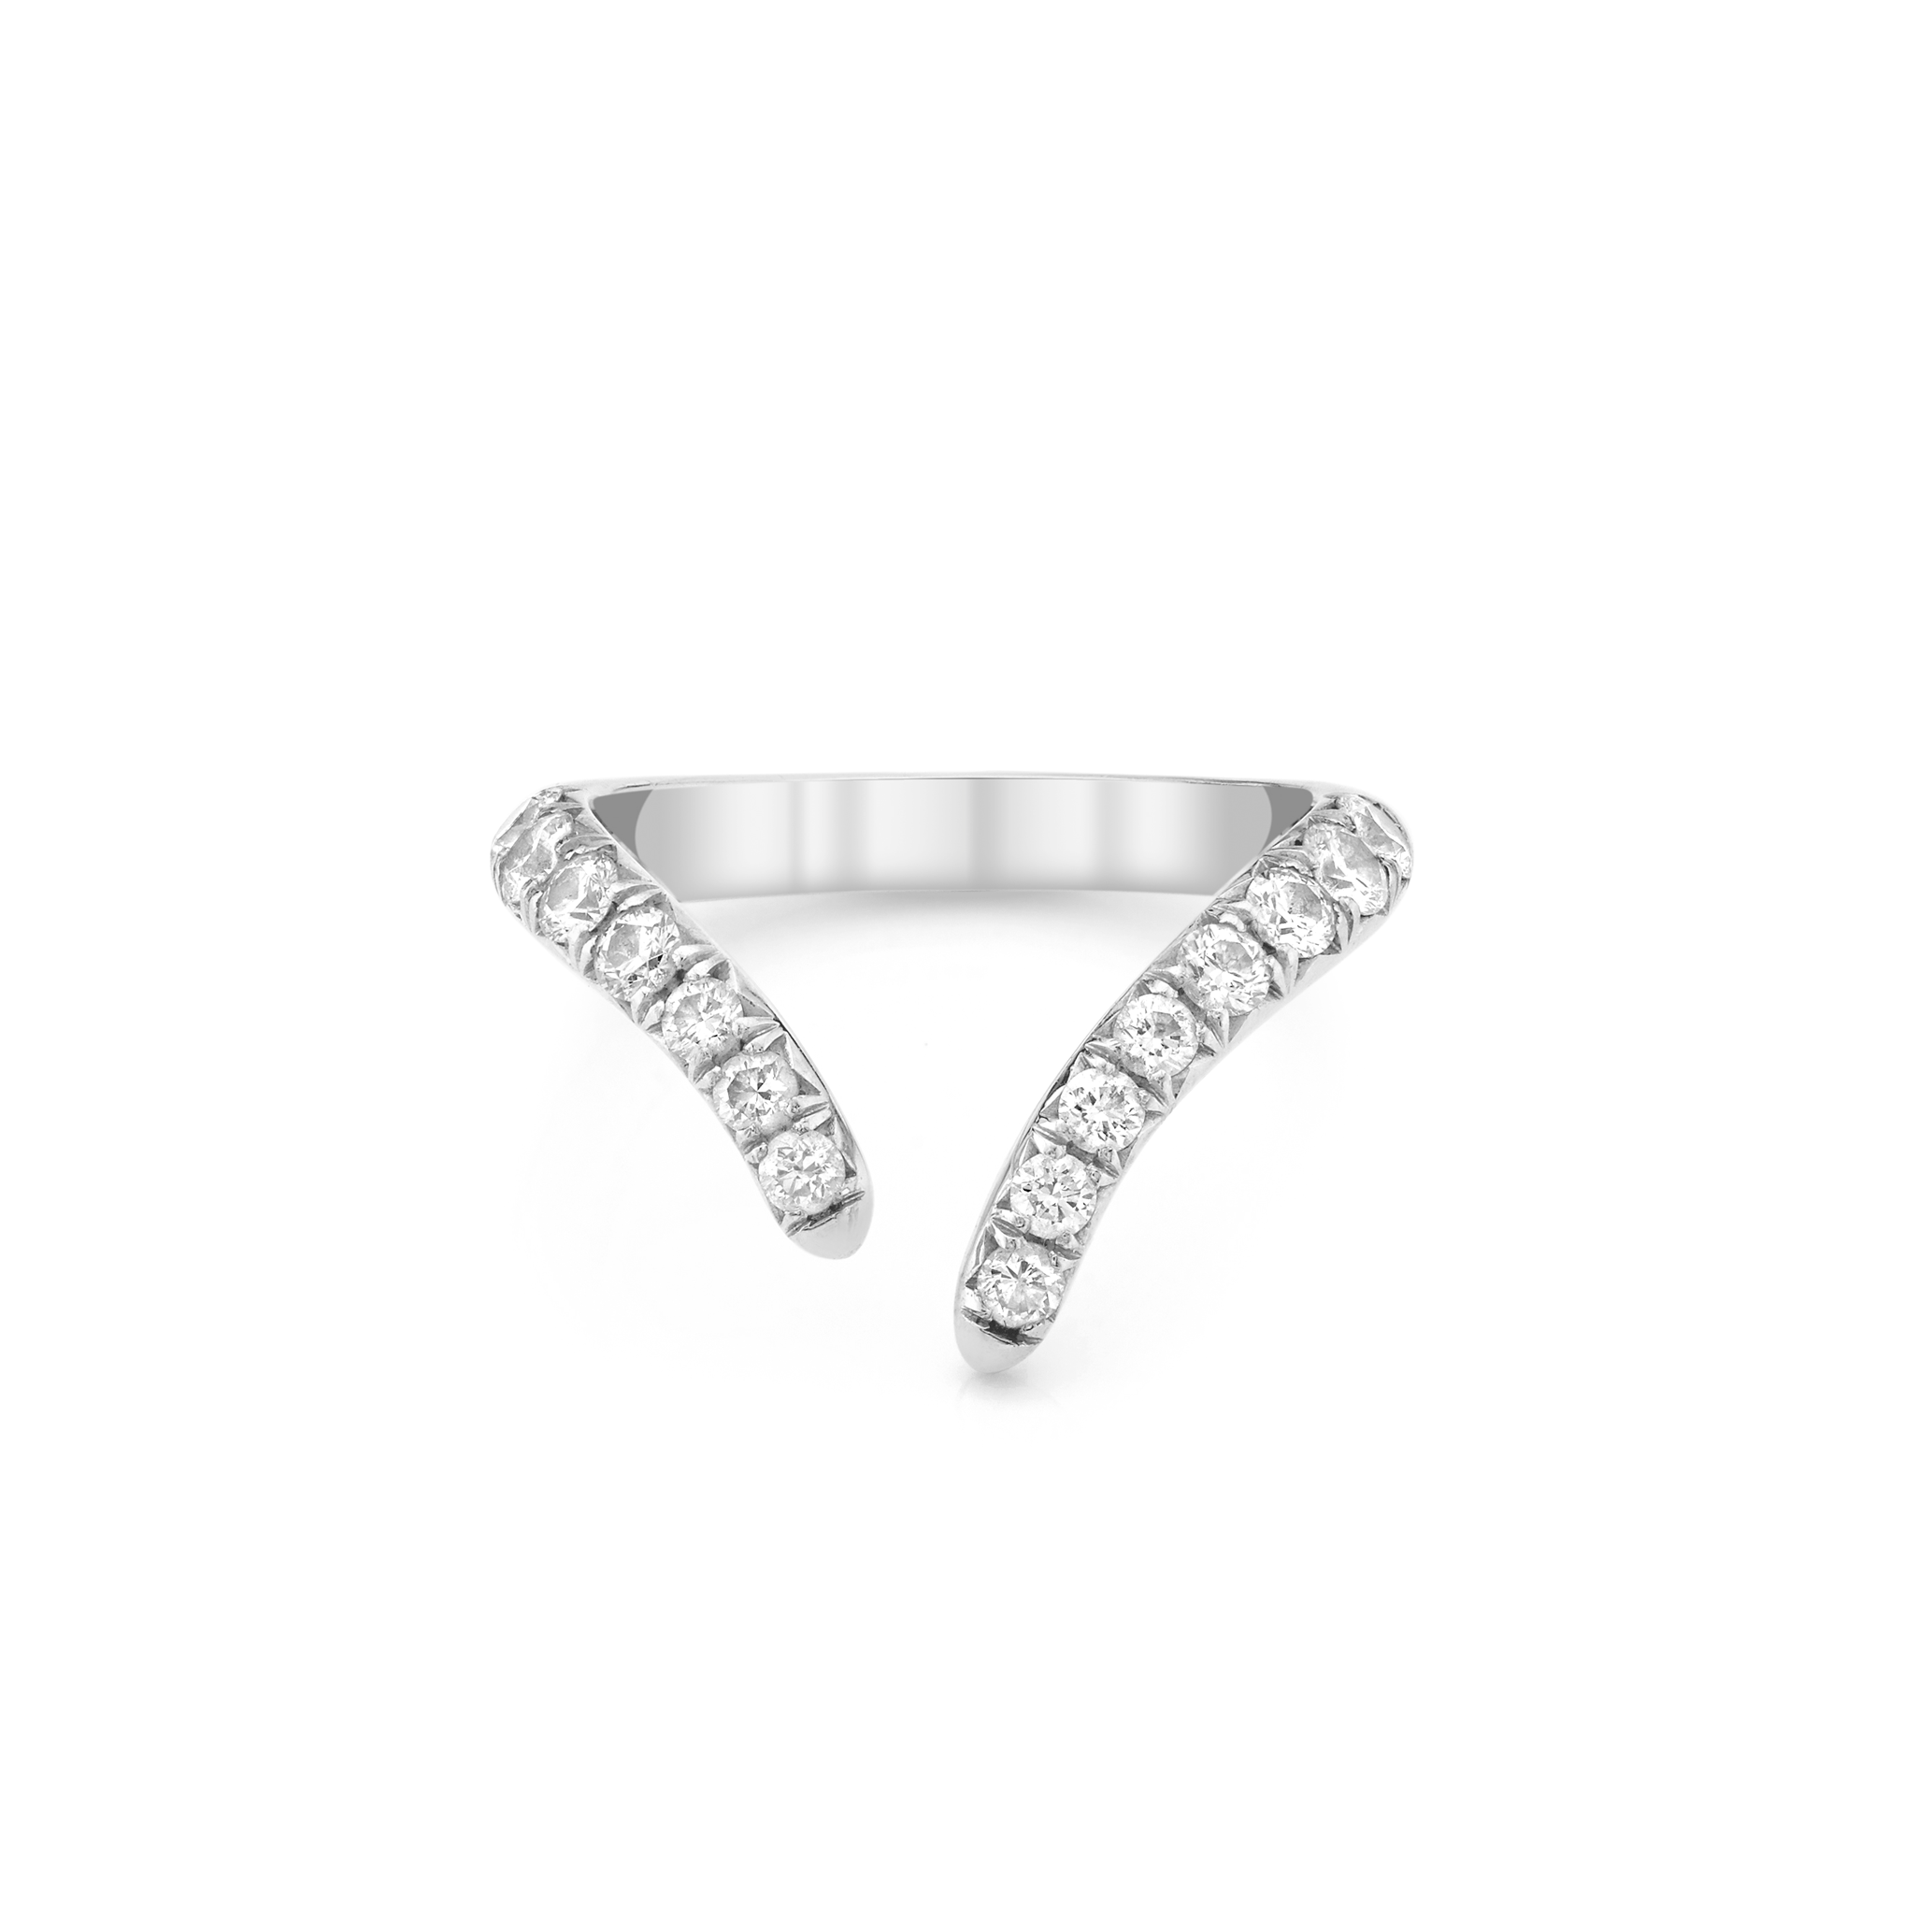 French Pavé Diamond Tusk Ring